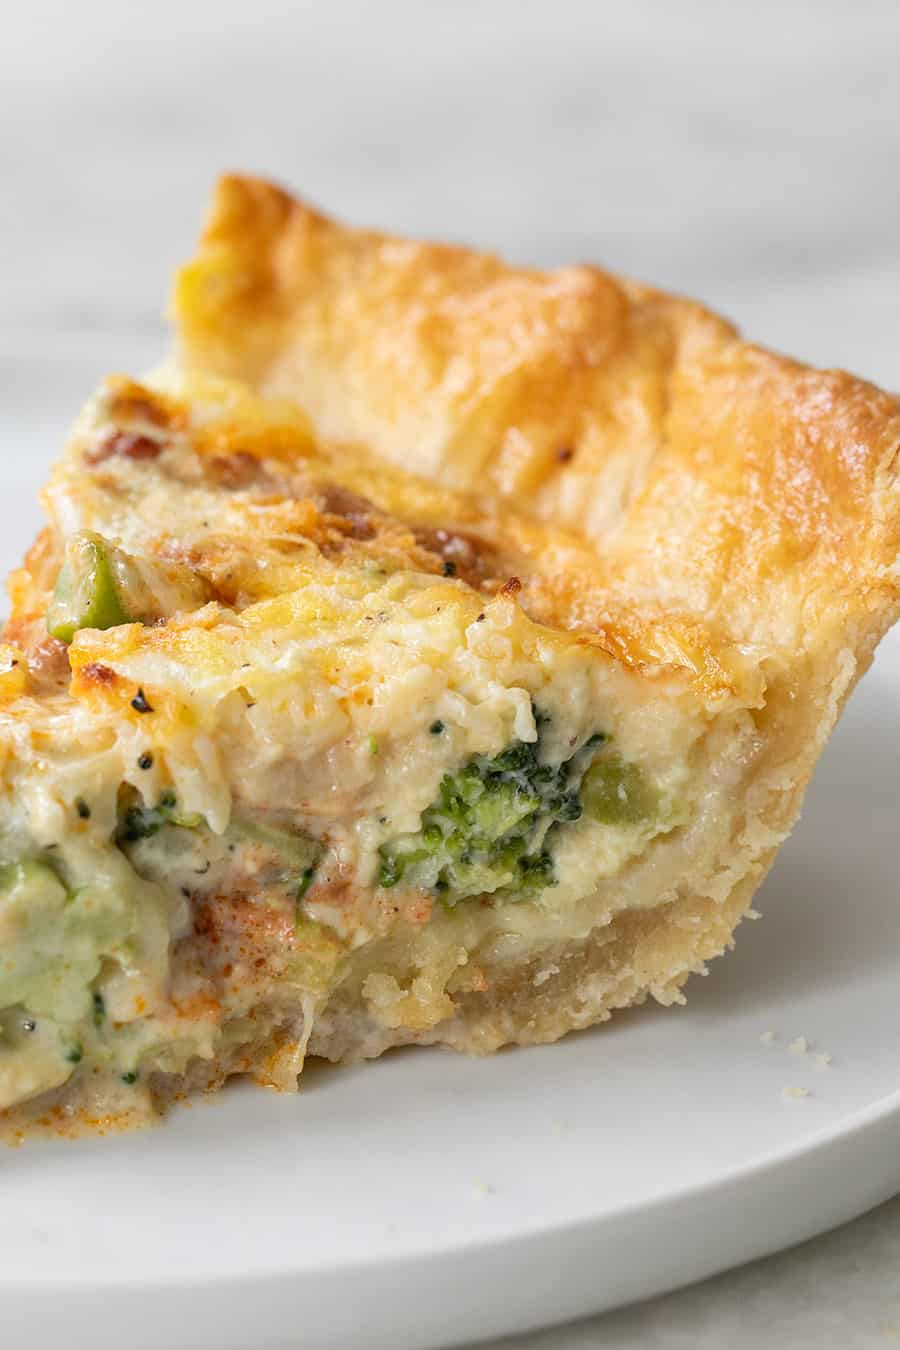 slice of a quiche with layers of cheese and broccoli